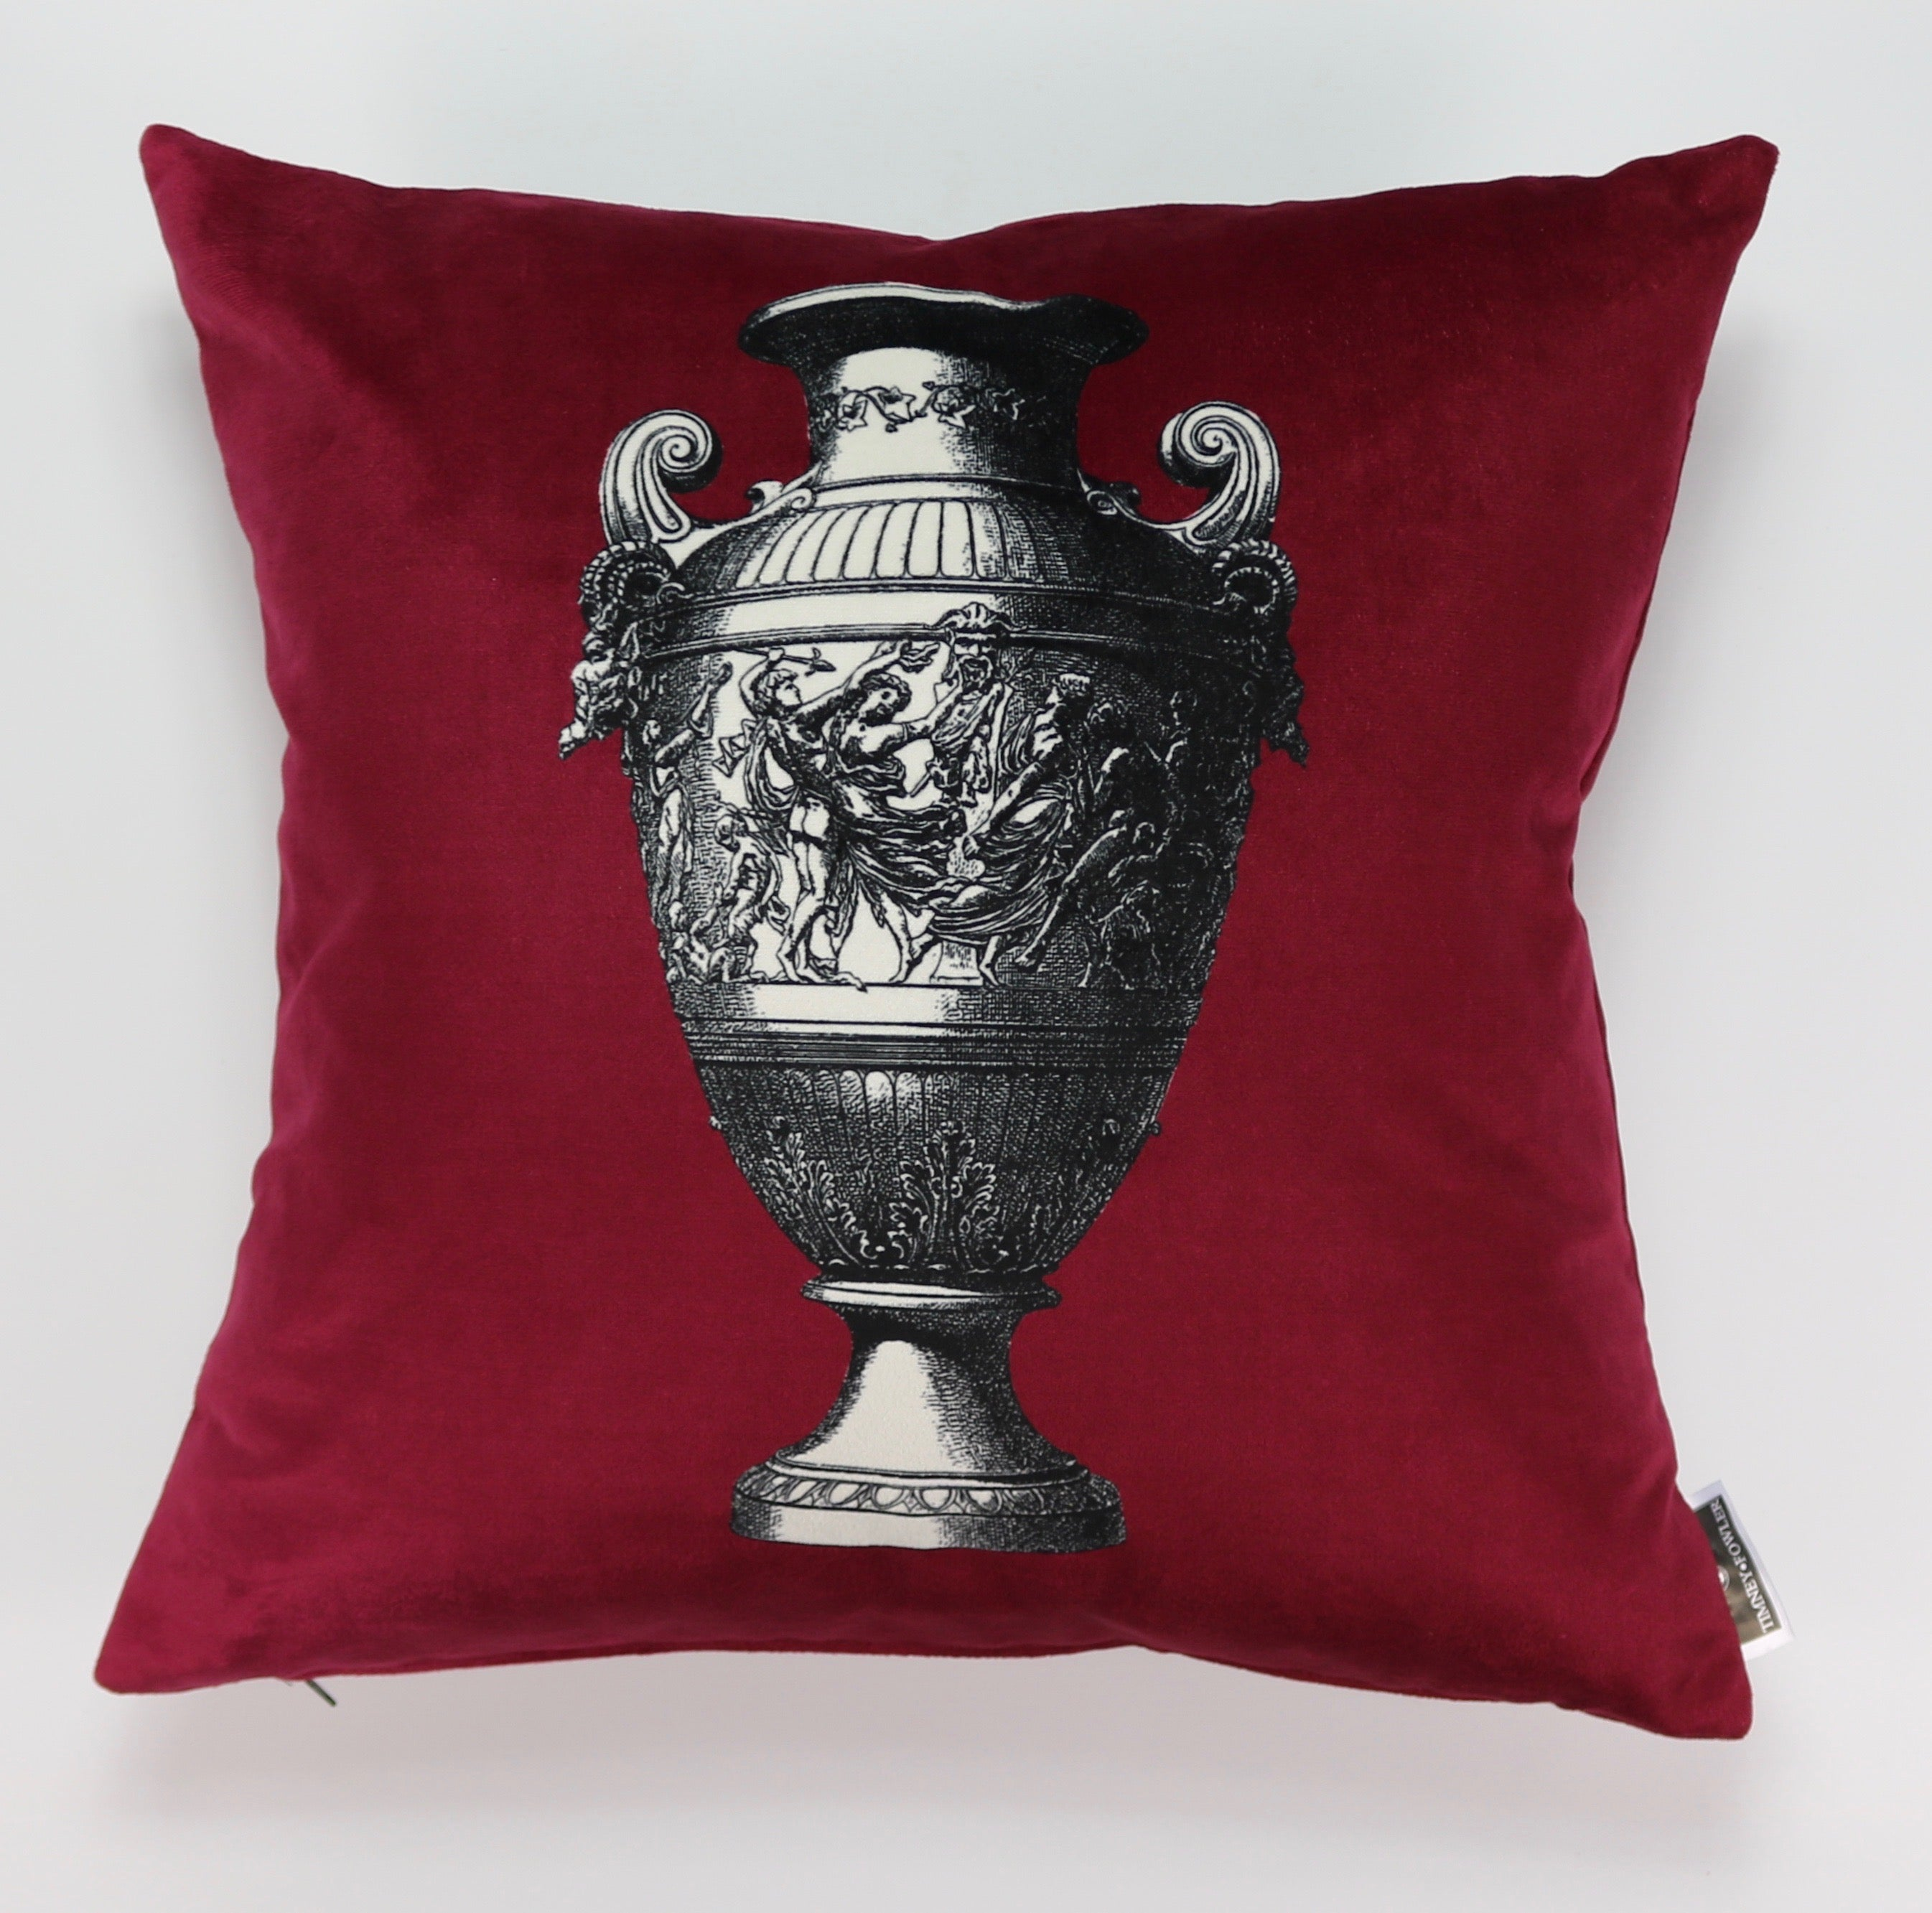 Timothy Fowler Cushion (Burgundy)